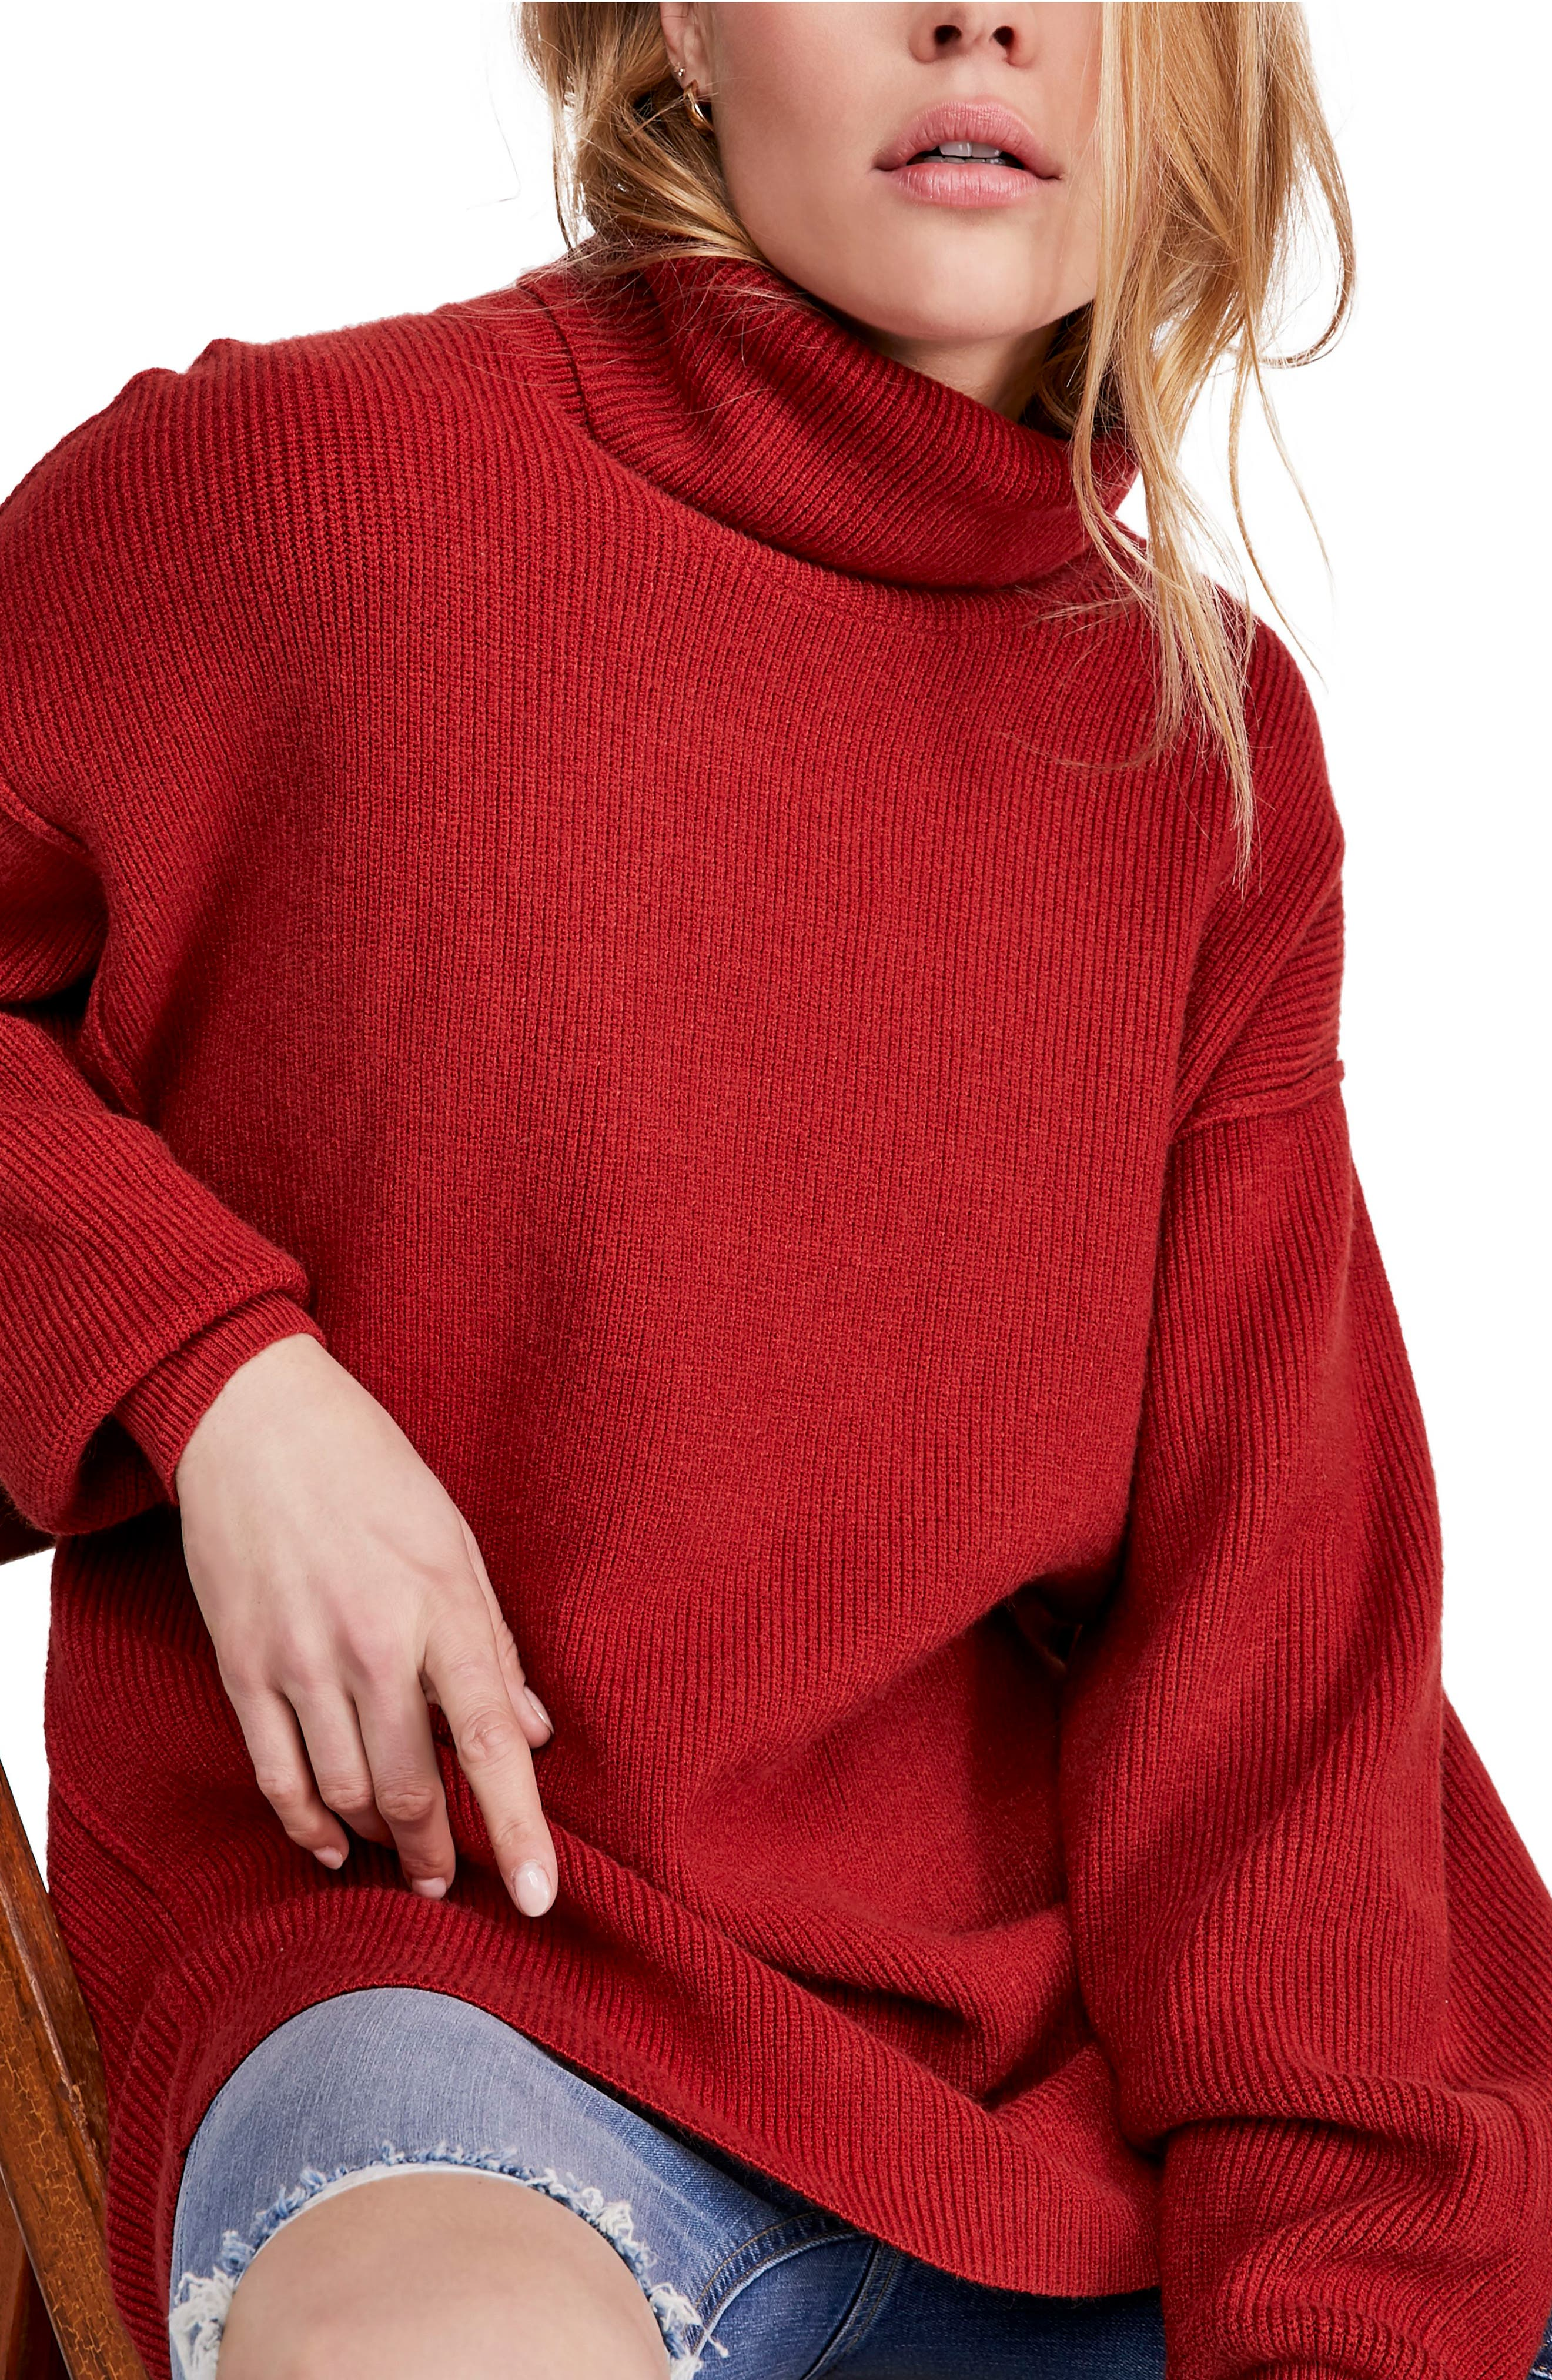 FREE PEOPLE, Softly Structured Knit Tunic, Alternate thumbnail 6, color, 600